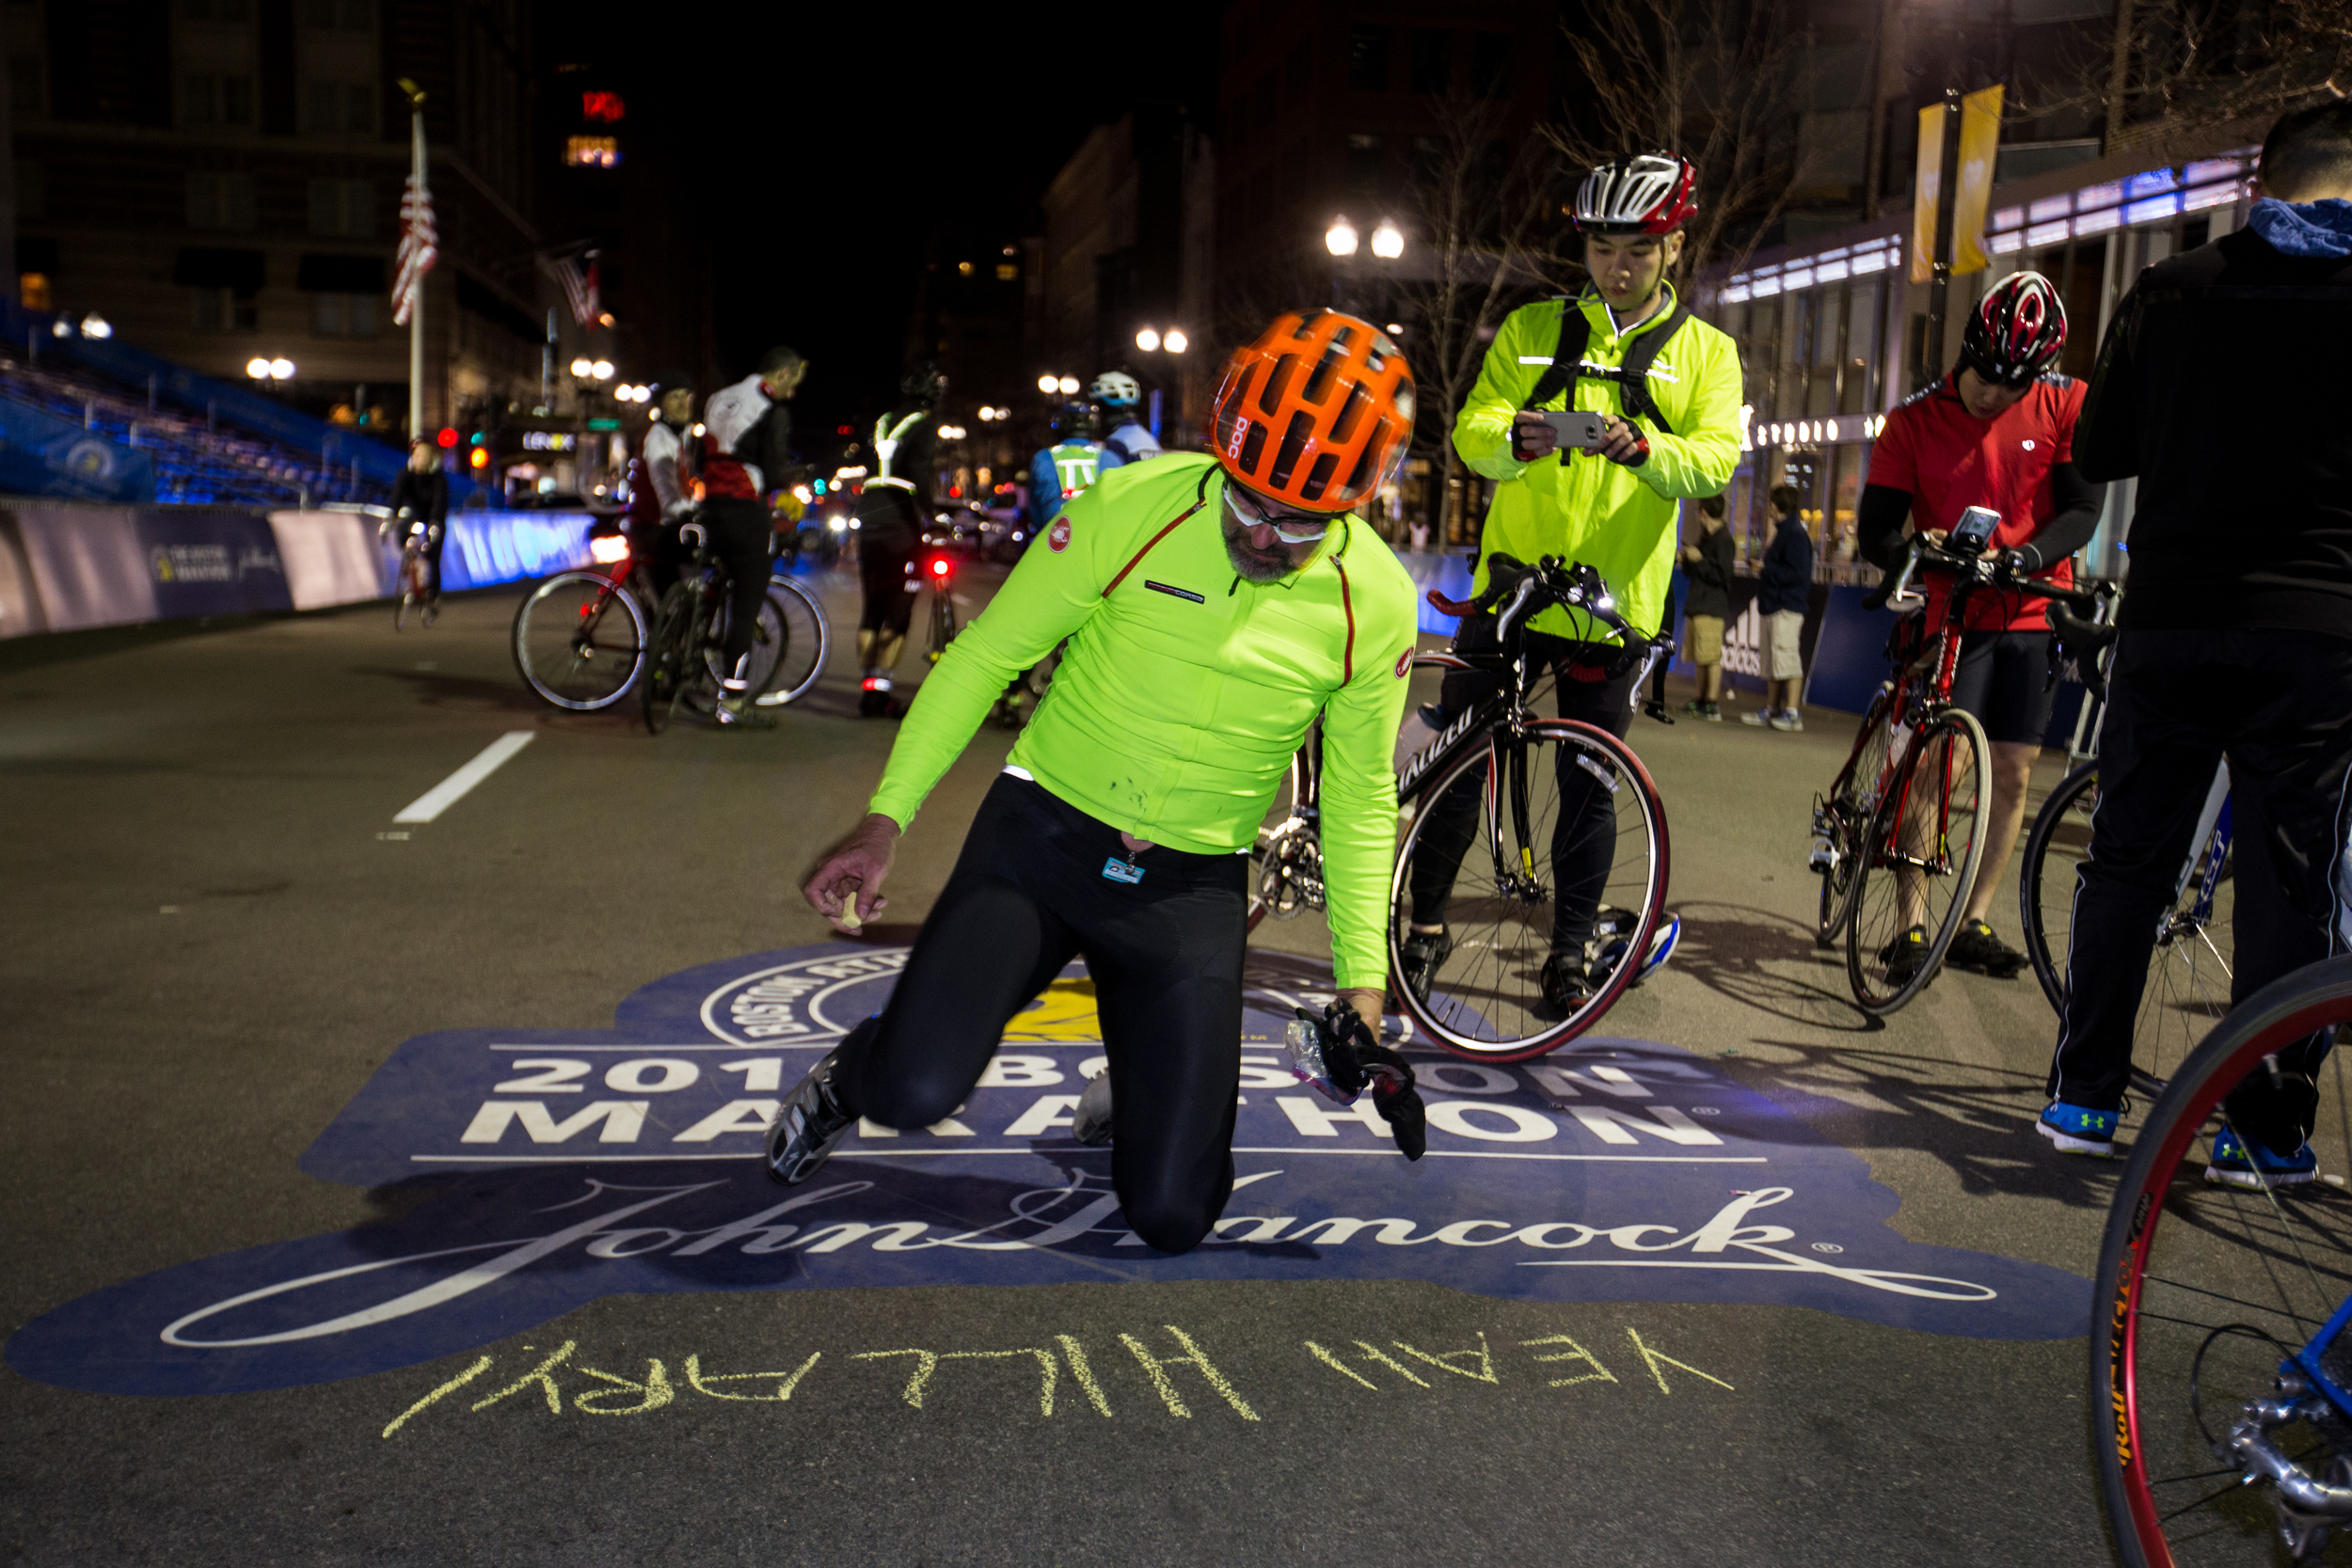 Vincent Chahley writes words of encouragement to his friend Hillary, who ran the marathon the next day, after completing the Midnight Marathon Bike Ride, which begins at midnight on April 18 in Hopkington, Mass., and traverses the route of the Boston Marathon.